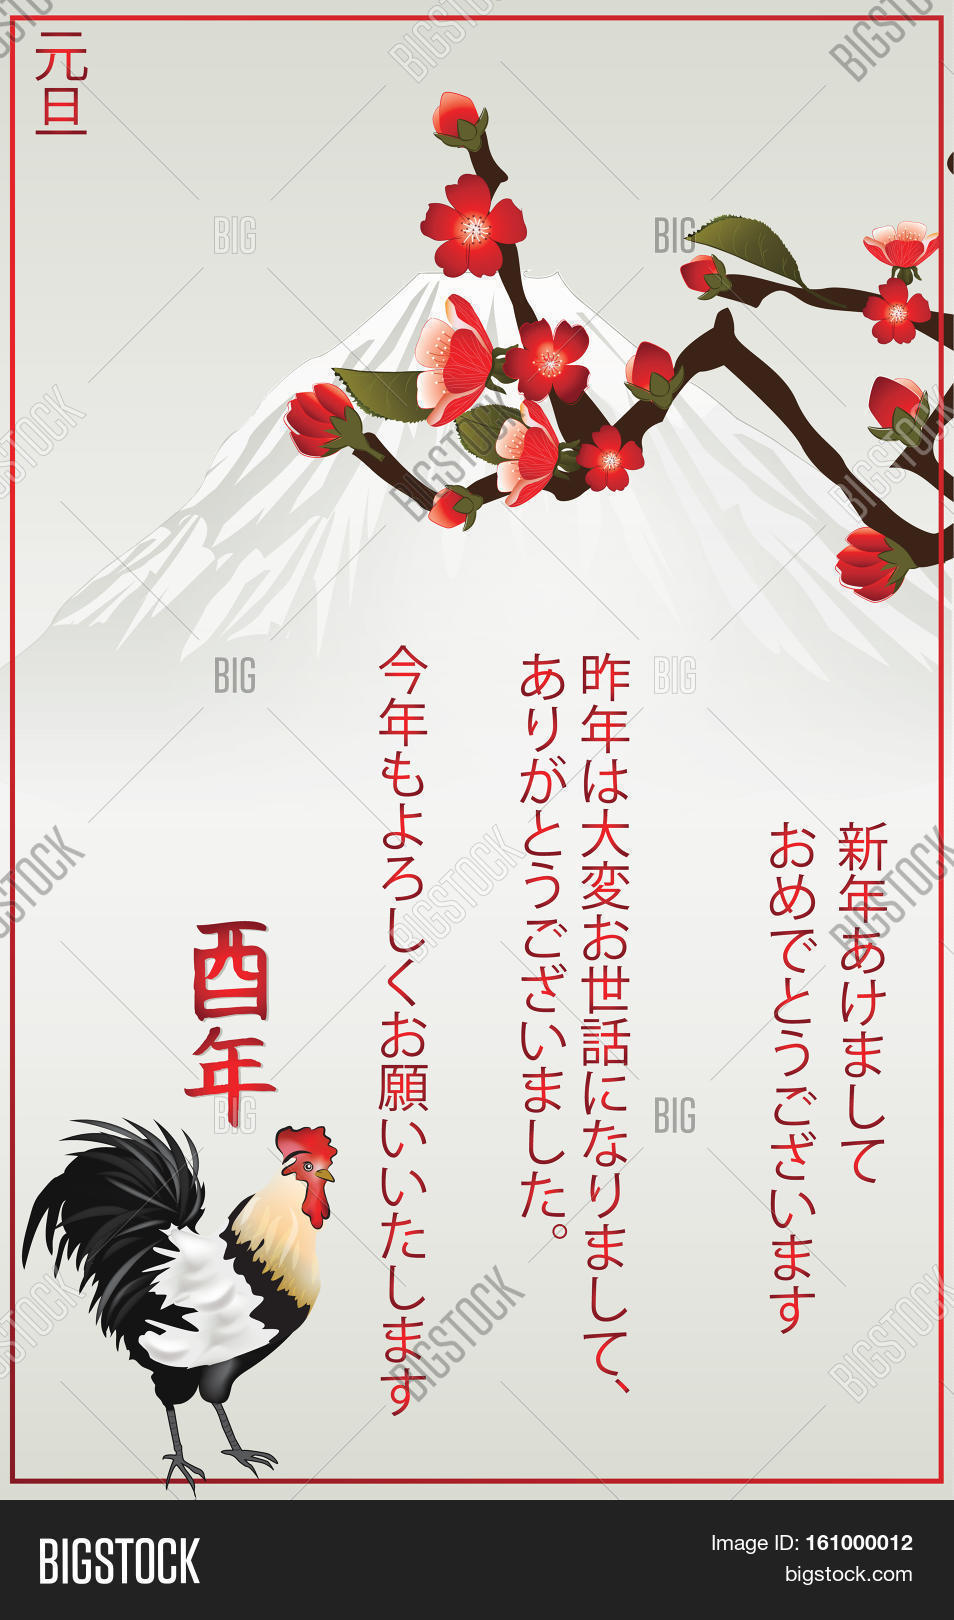 Japanese new year image photo free trial bigstock japanese new year greeting card japanese text year of the rooster japanese m4hsunfo